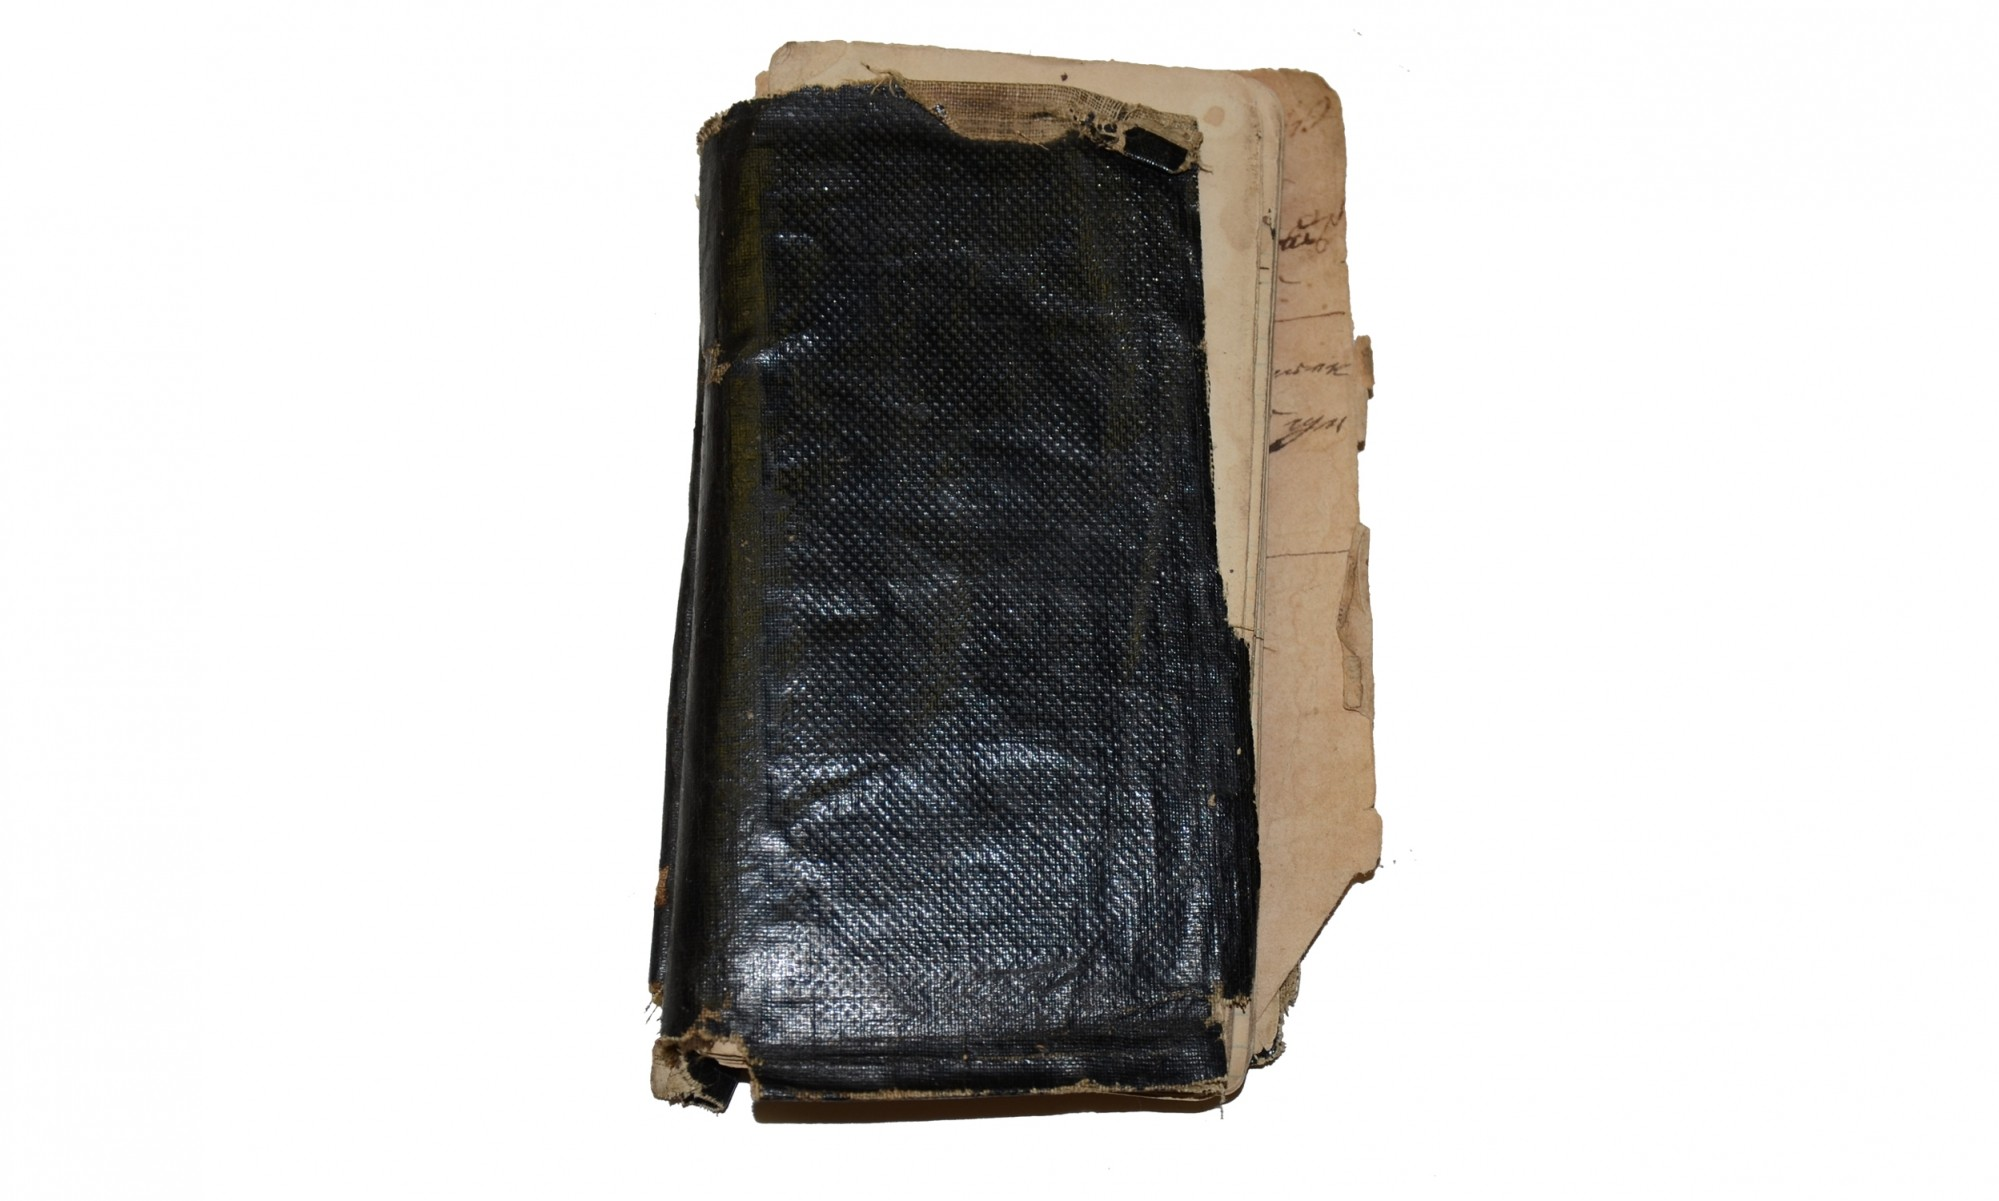 DIARY OF SAMUEL P. HARTMAN, 49TH PENNSYLVANIA INFANTRY, 1864